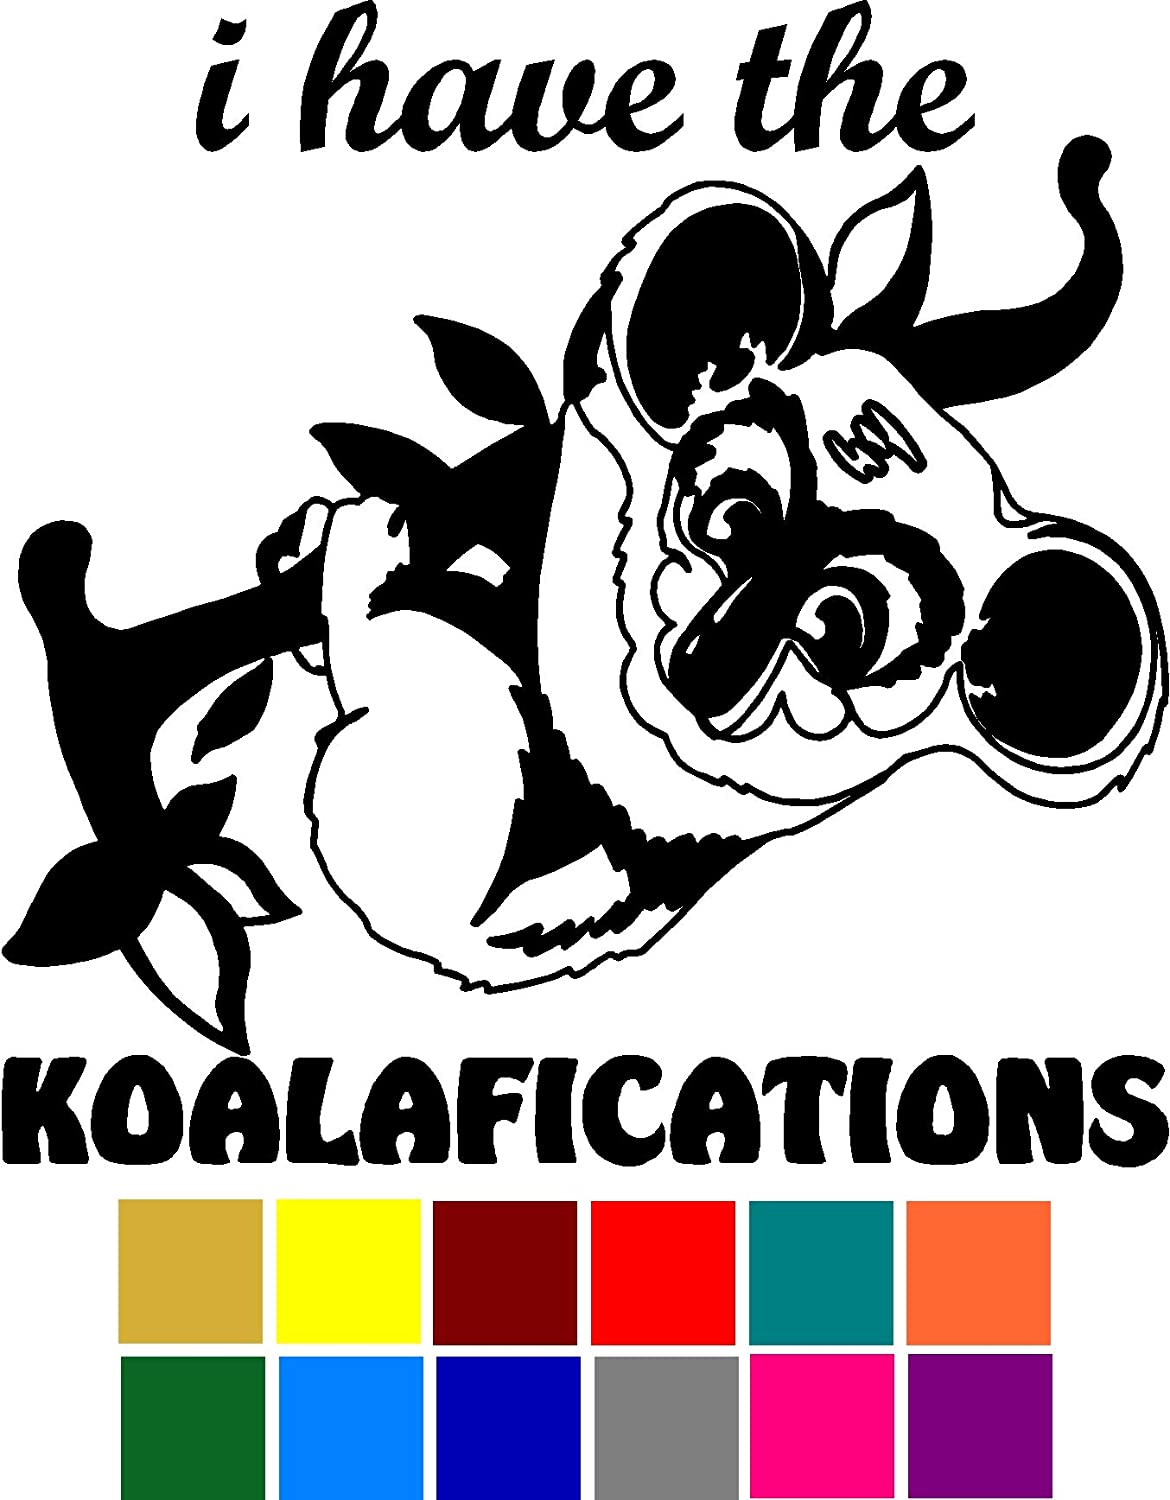 I Have The Koalafications Qualifications Funny Animal Pun Decal Sticker Vinyl Car Window Tumblers Wall Laptops Cellphones Phones Tablets Ipads Helmets Motorcycles V and T Gifts